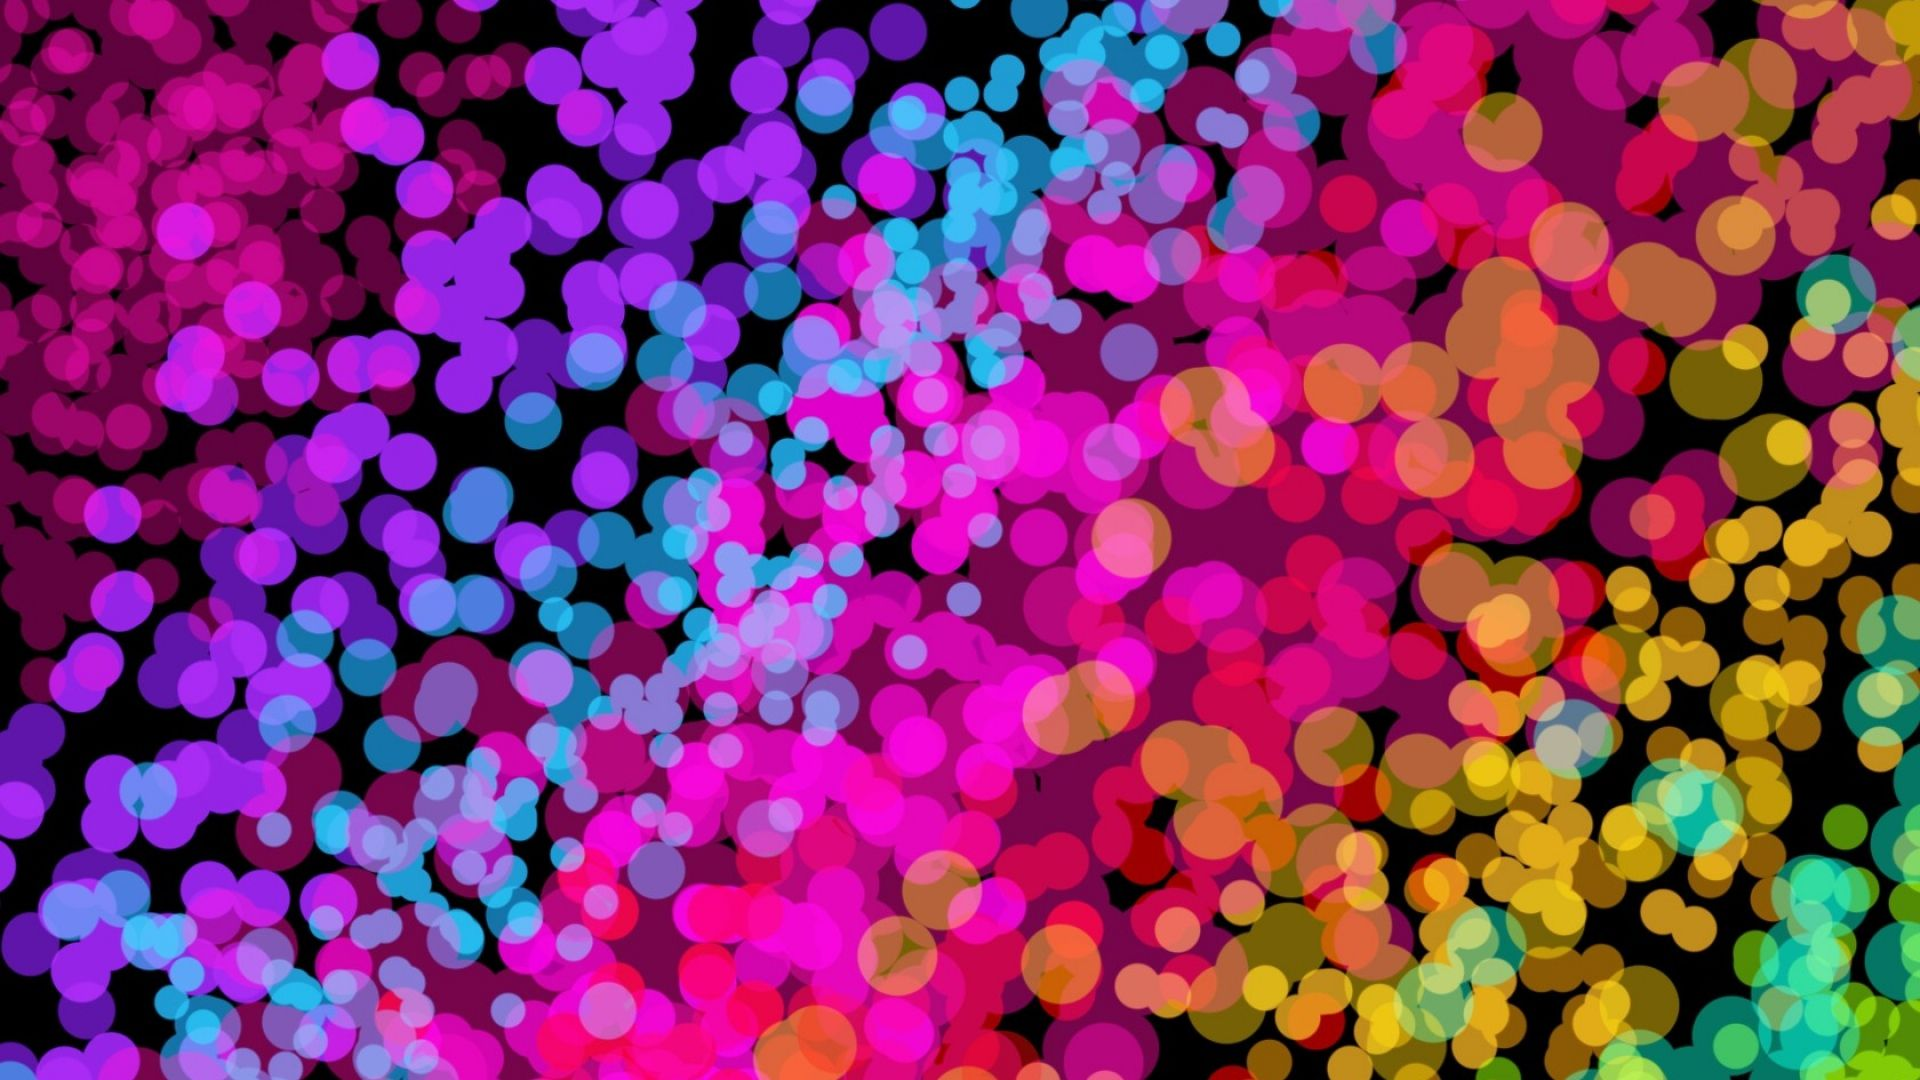 Bright Colors Background Picture Wallpaper Iphone Neon Pink Glitter Wallpaper Bright Wallpaper